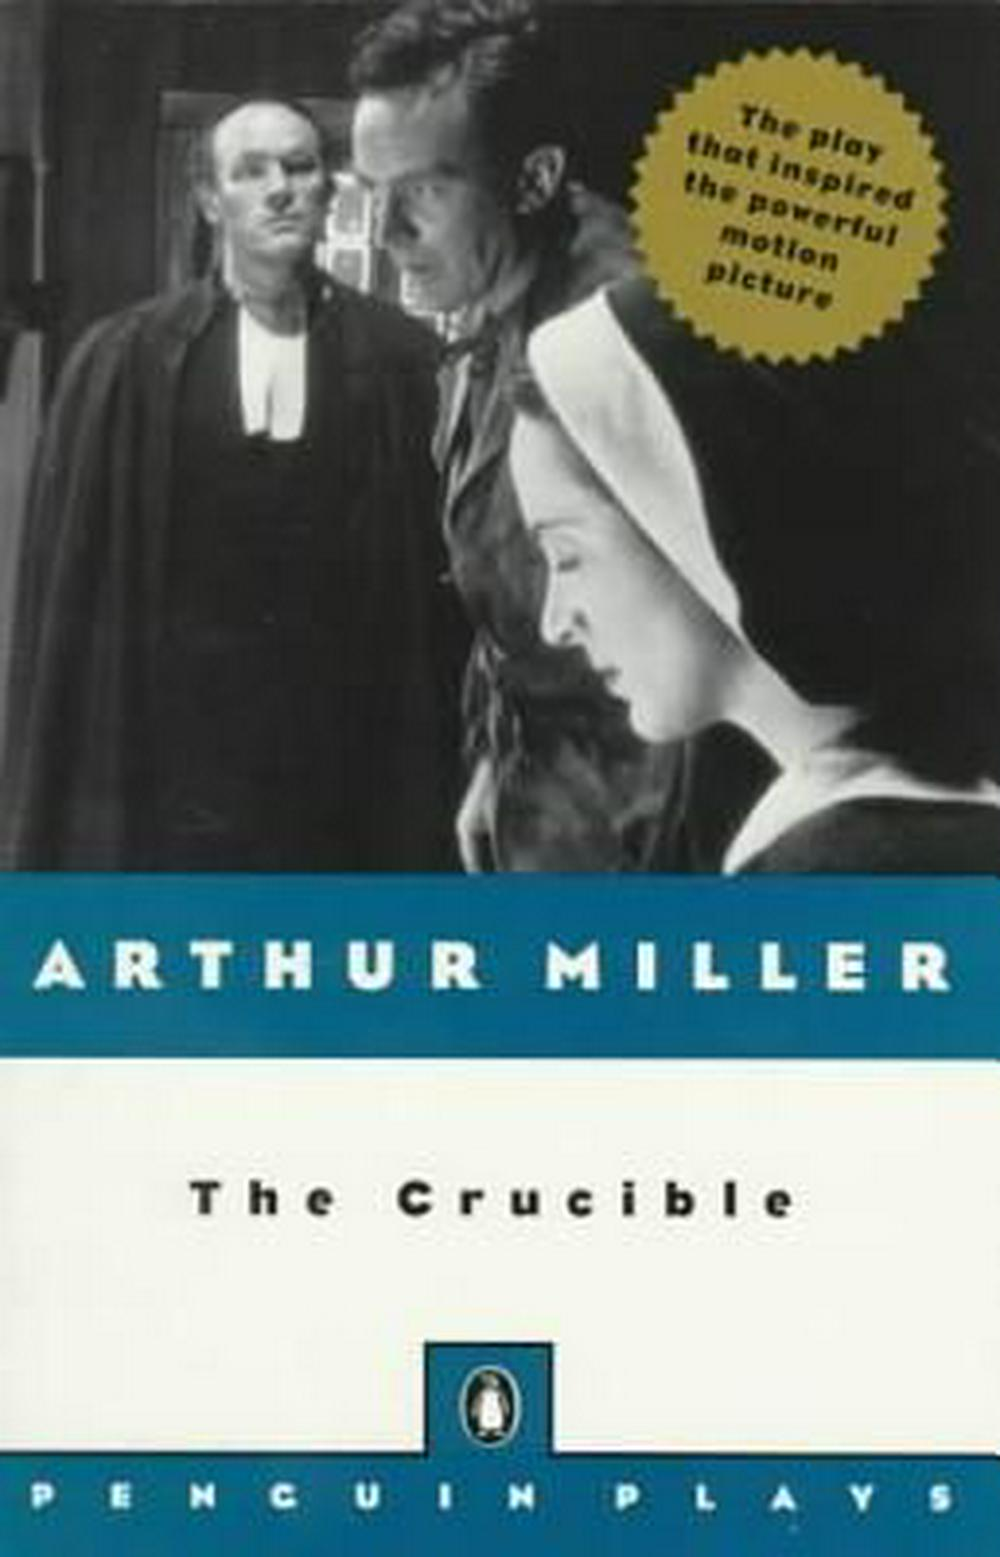 an overview of the special attention to john hale in the crucible a play by arthur miller Complete summary of arthur miller's the crucible enotes plot summaries cover all the significant action of the crucible.